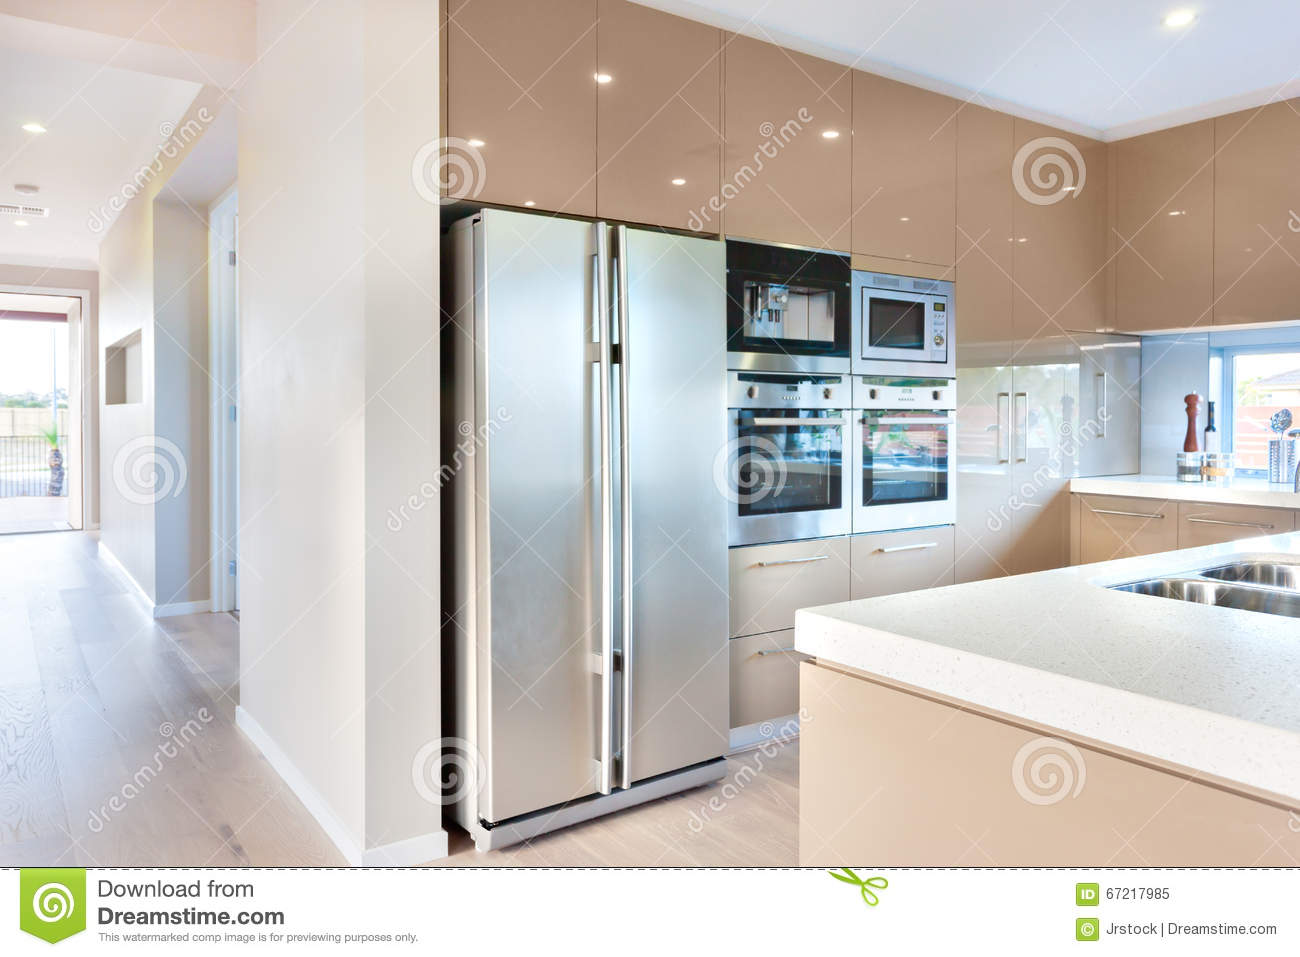 Modern Refrigerator In The Luxury Kitchen With Microwave Ovens